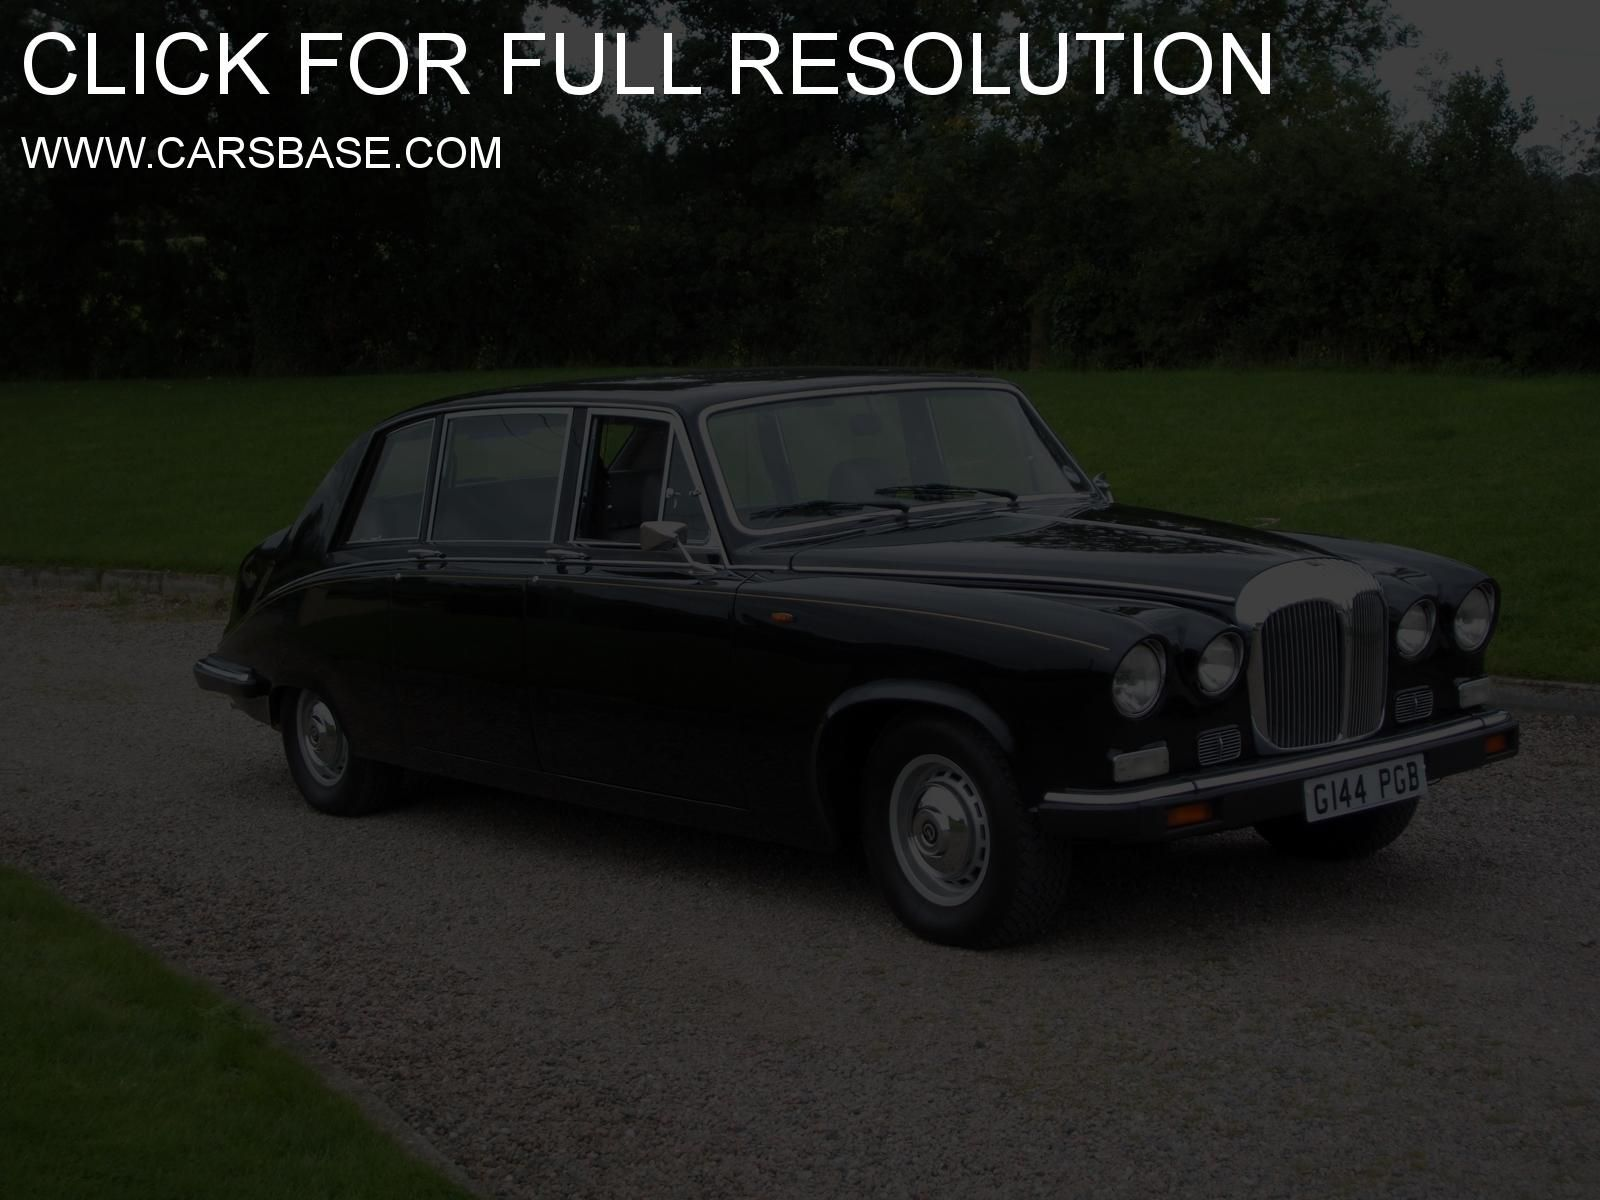 Daimler limo this is a cool limo enjoy much more fabulous